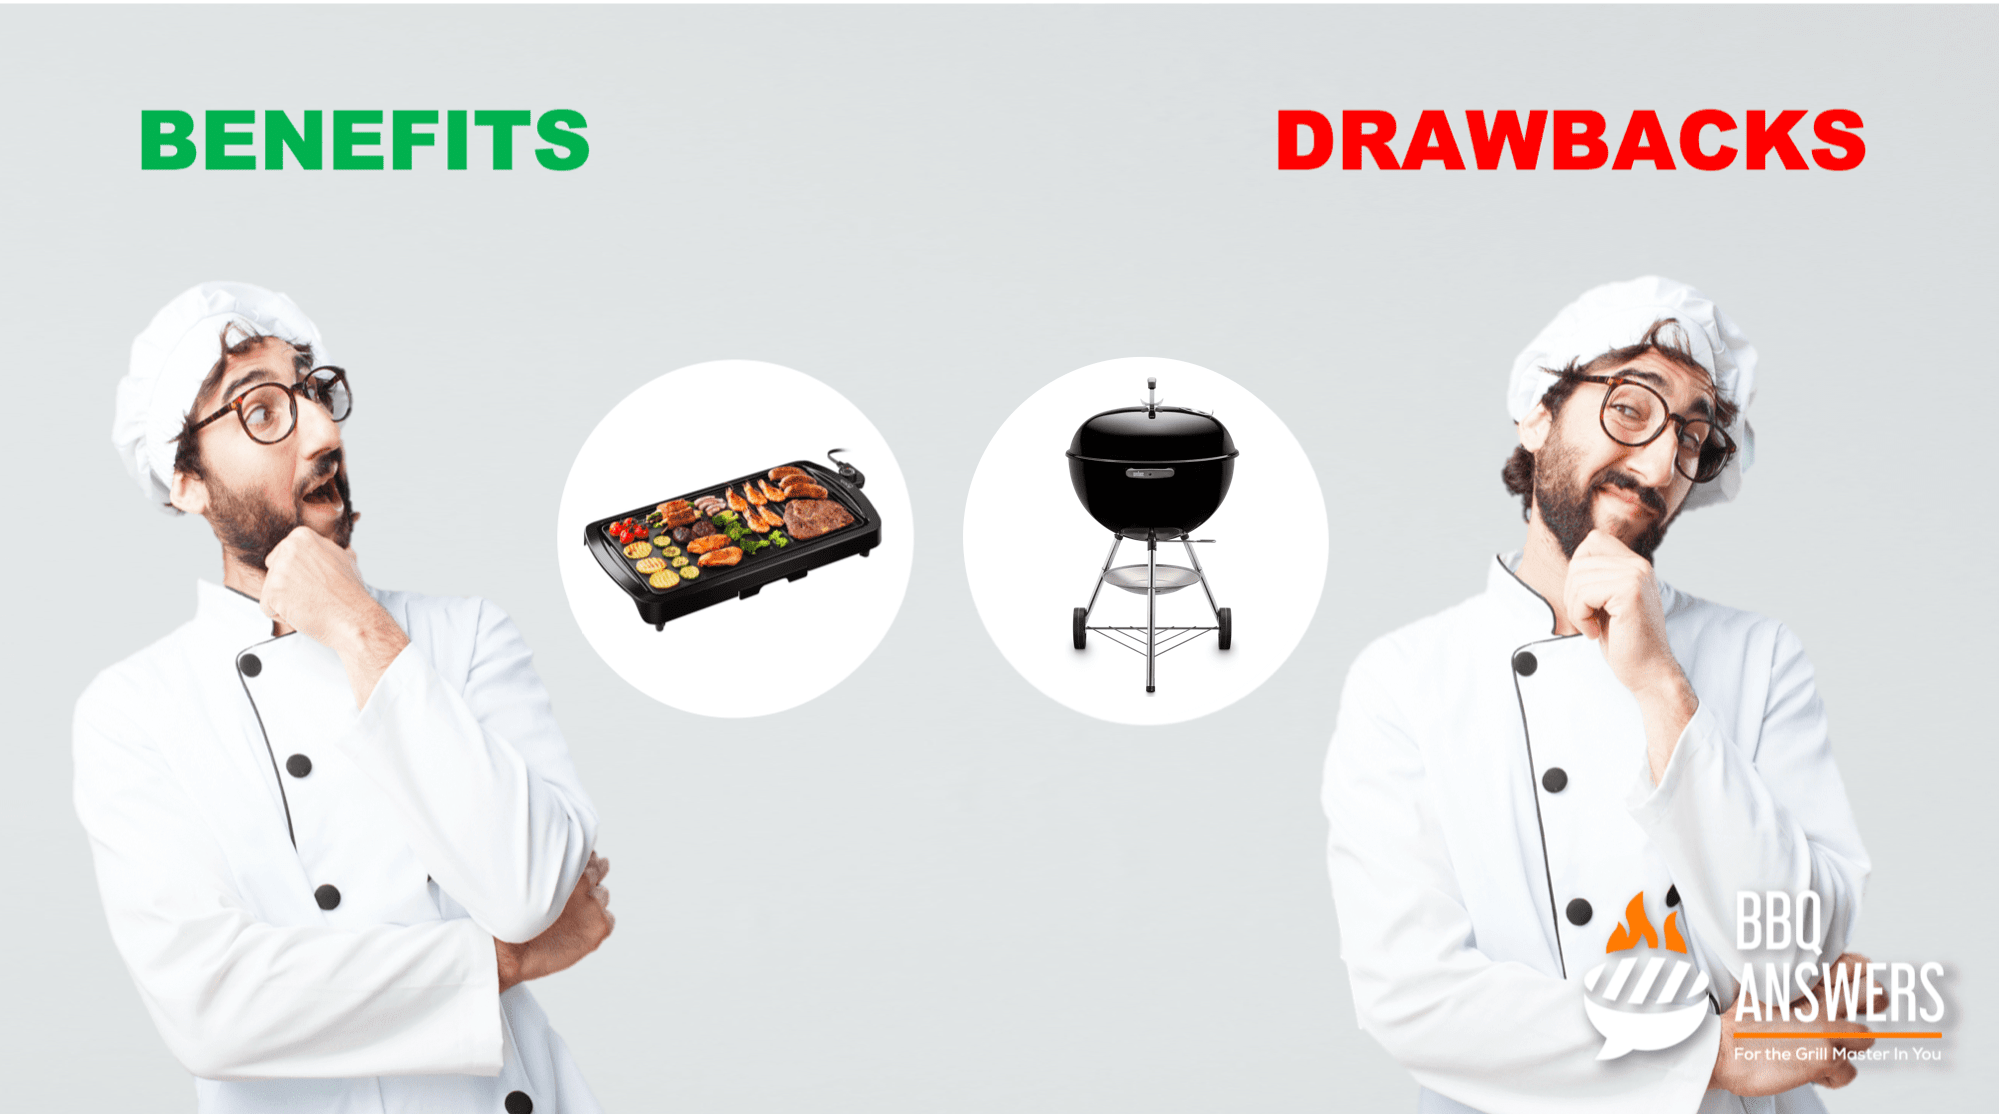 Benefits and Drawbacks of Electric and Charcoal Grill   BBQanswers